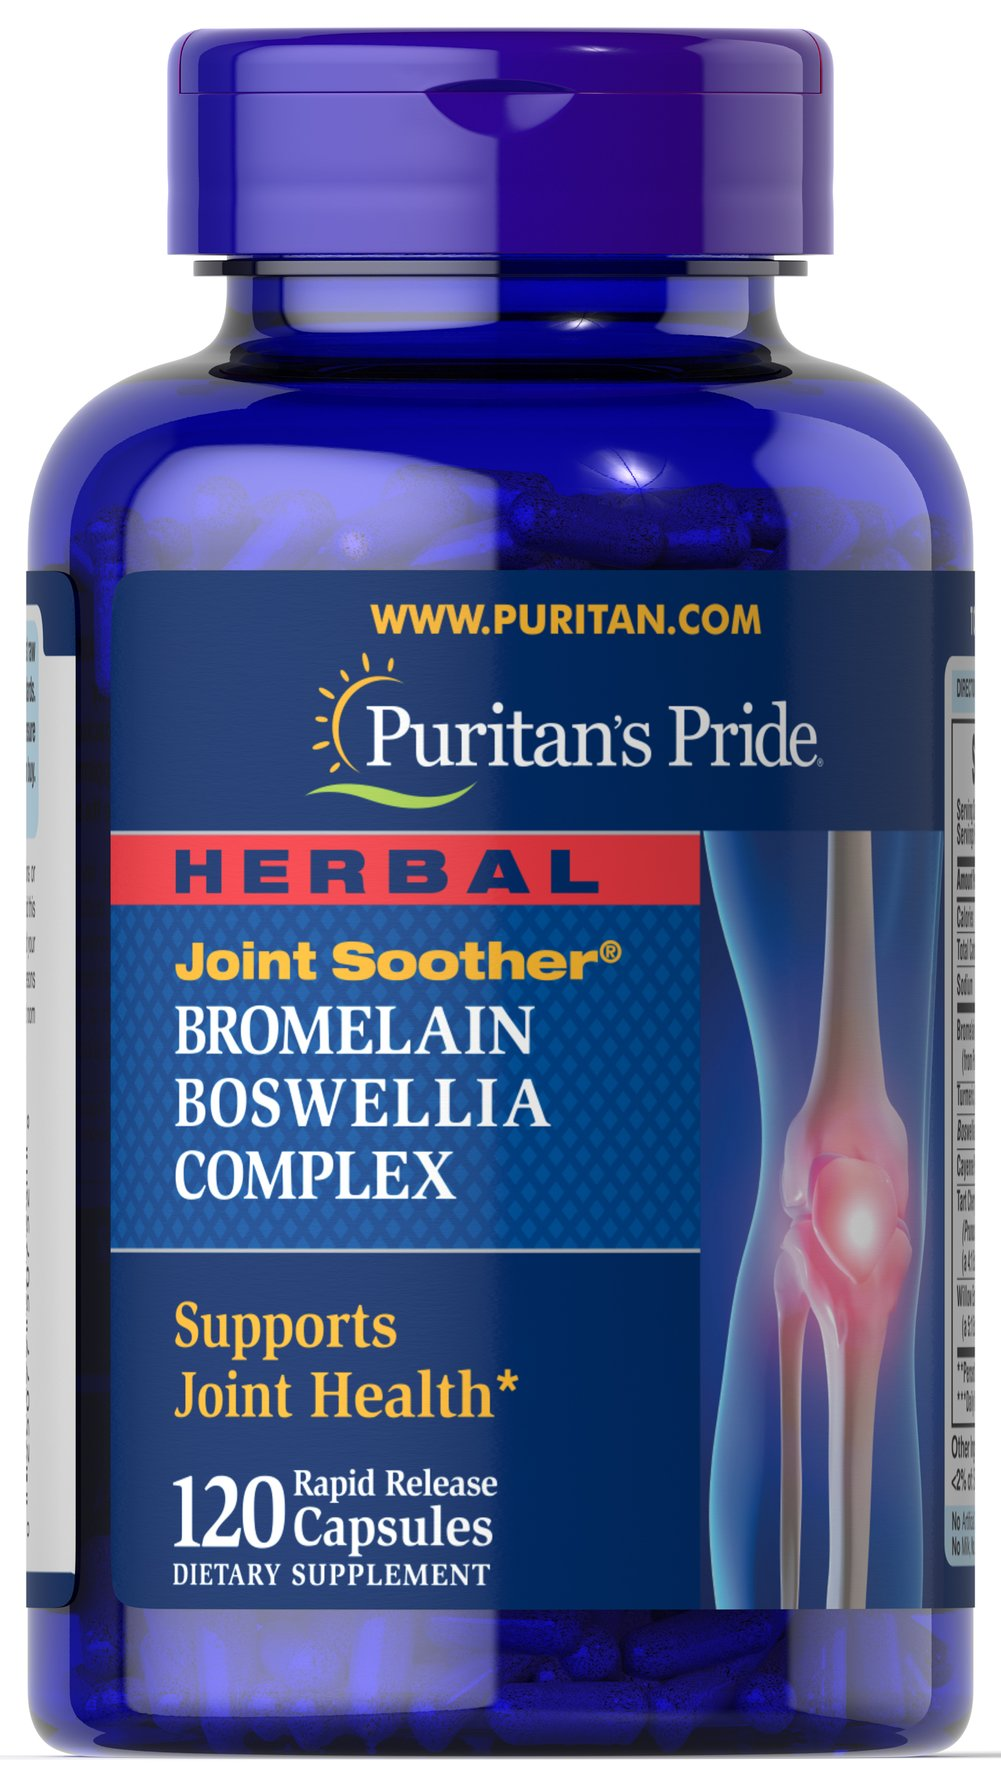 Herbal Joint Soother® Bromelain Boswellia Complex with Turmeric <p>Contains ingredients that work together to support joint health**</p> <p> Also contains Turmeric and White Willow Extract</p> <p>Herbal Joint Soother® available in rapid release capsules</p> <p>This Herbal Joint Soother® features a combination of ingredients that work together to support joint health.** Cartilage support is an important part of healthy joints, and these rap